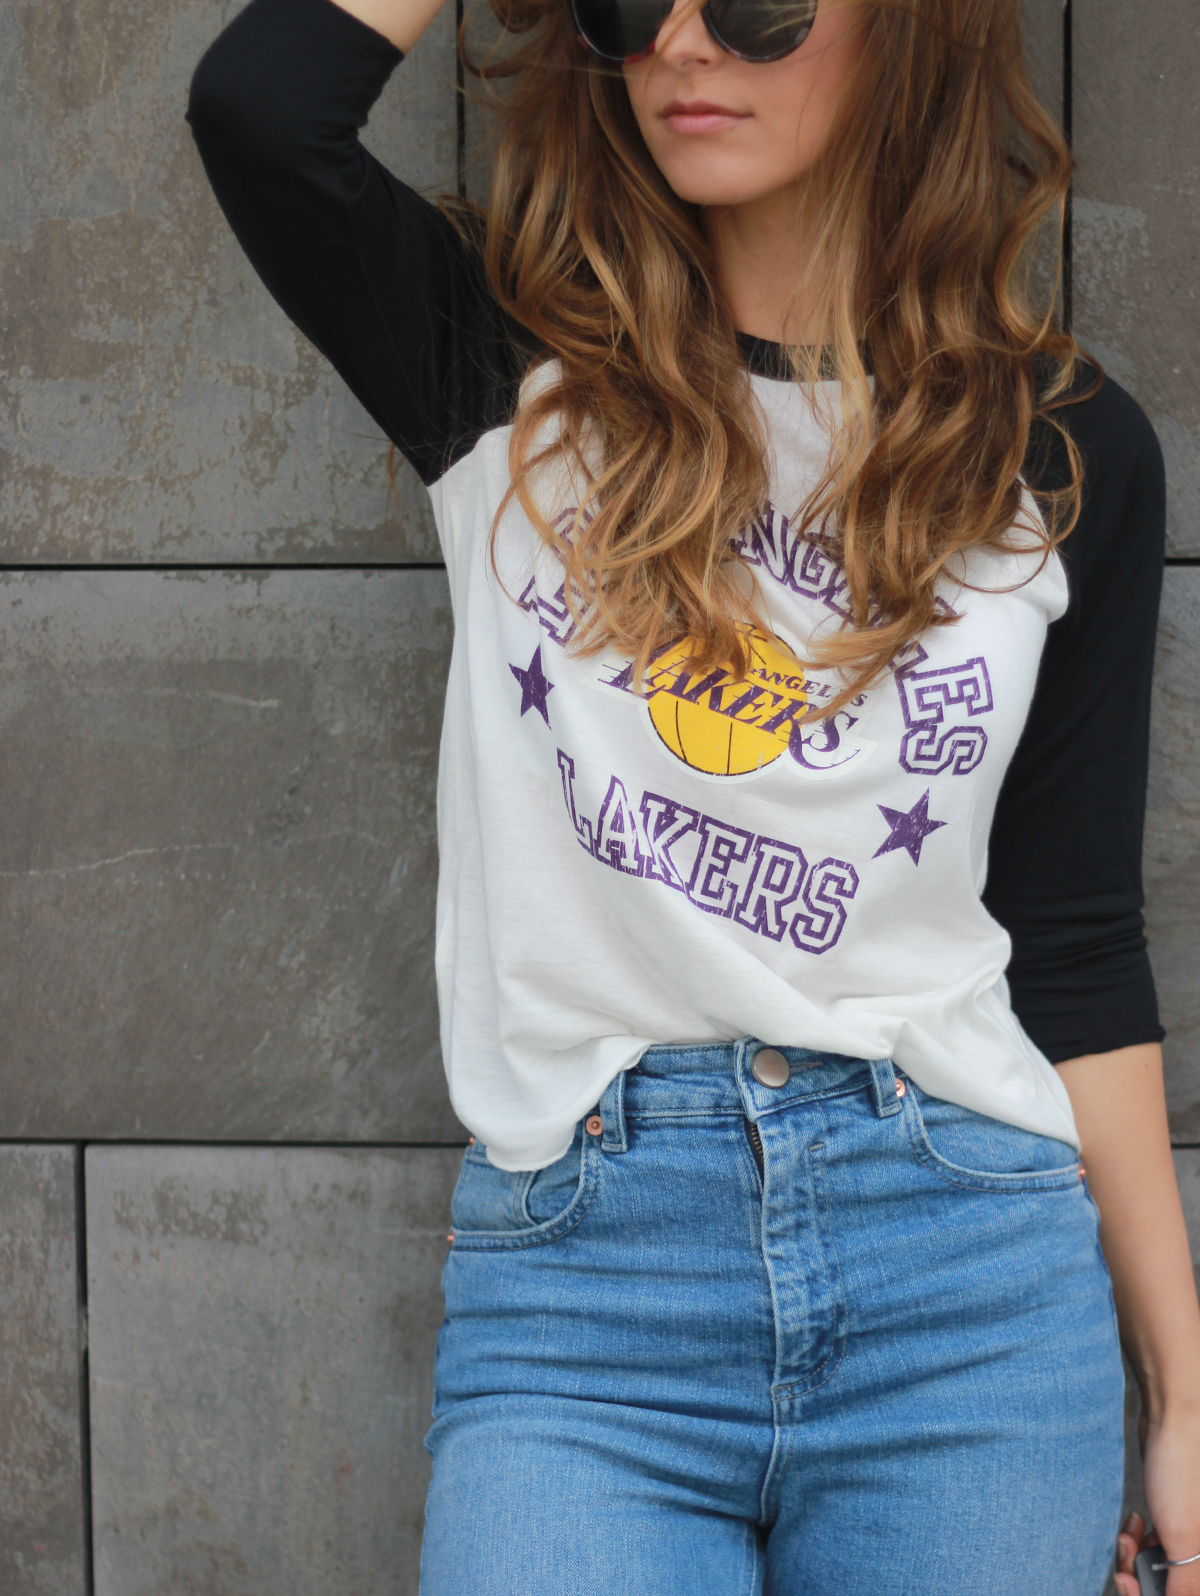 lakers shirt-outfit-fashionblogger-13